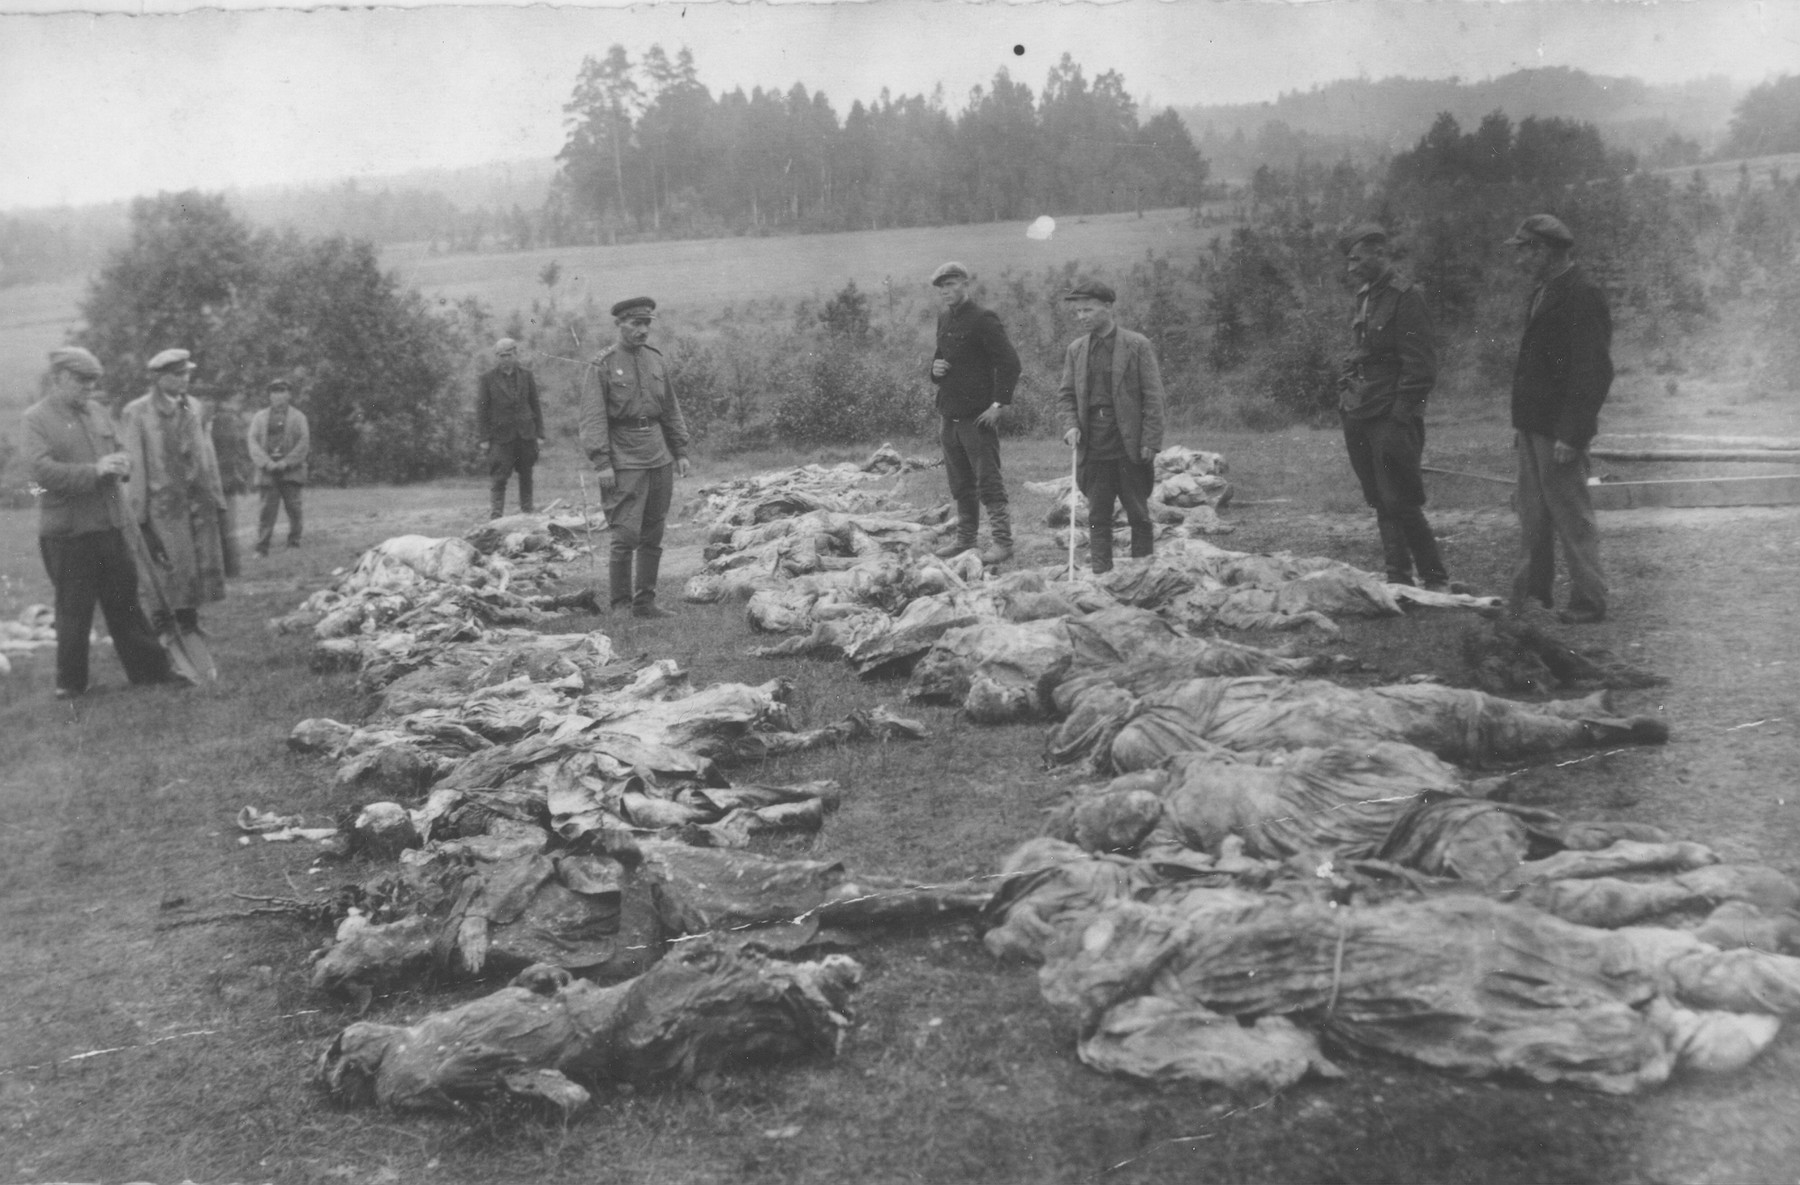 Lithuanians and a Soviet officer stand among the remains of twenty Jewish atrocity victims, who were exhumed from a mass grave in the woods near Utena.